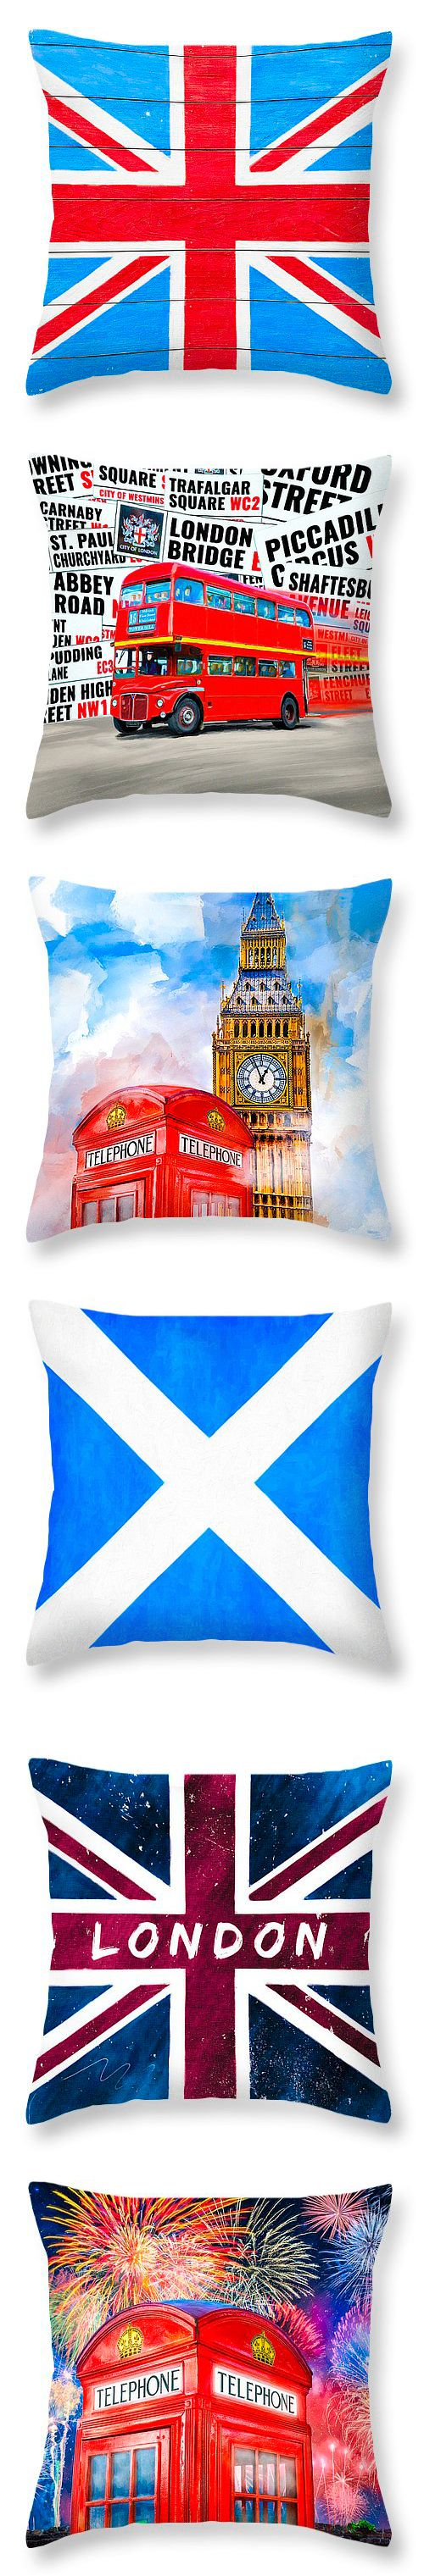 Art for Sale   Fine Art America. 250 best images about UK Home Decor on Pinterest   Cushions